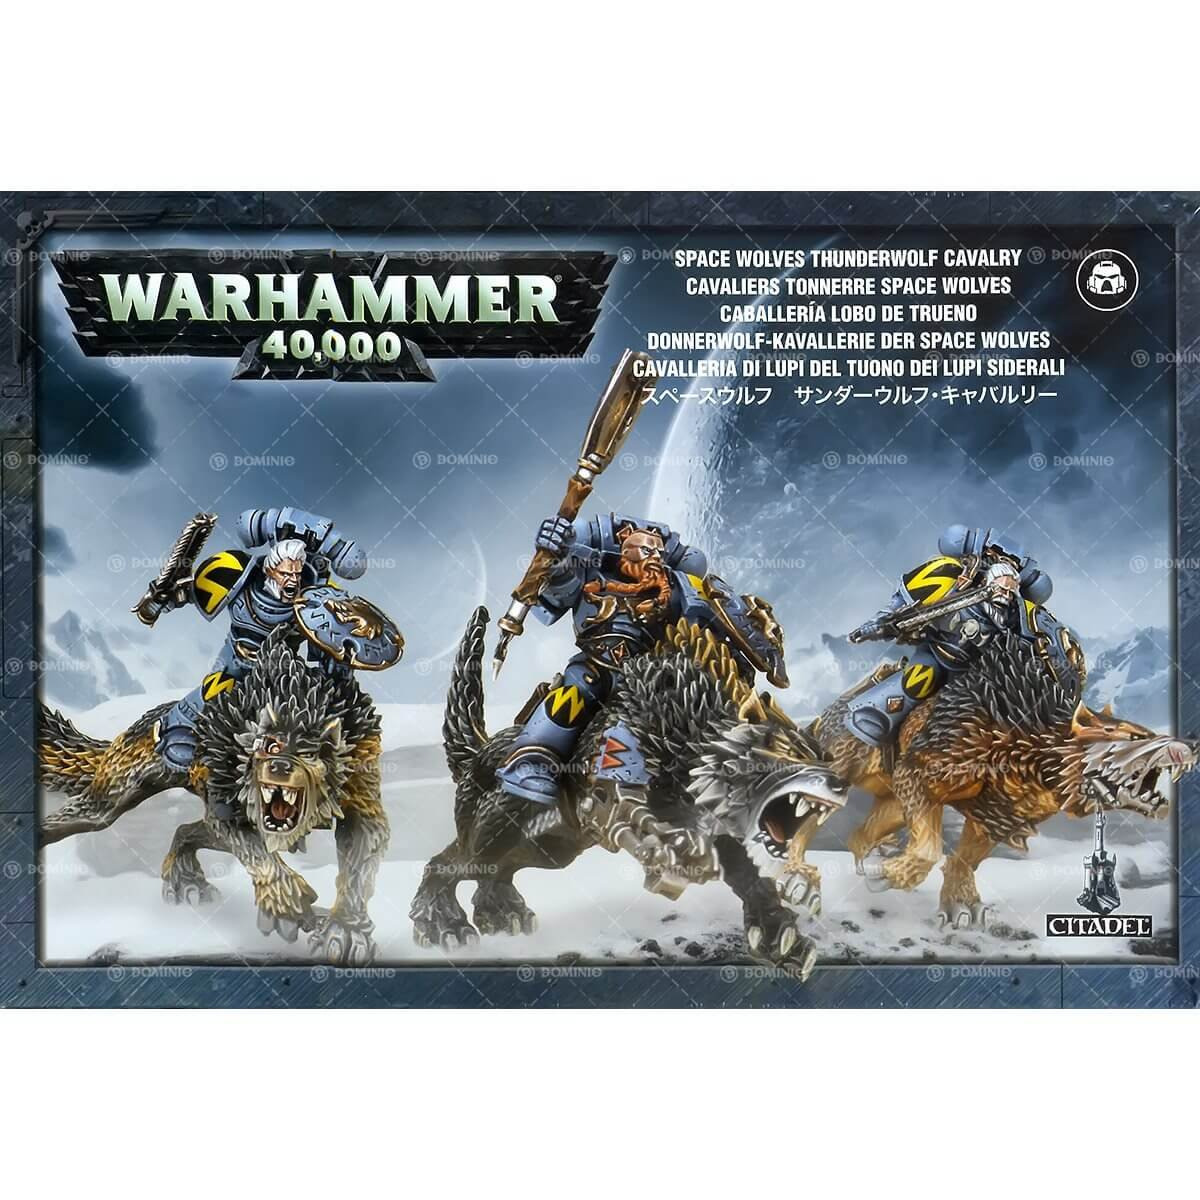 Games Workshop GW53-09 SPACE WOLVES THUNDERWOLF CAVALRY